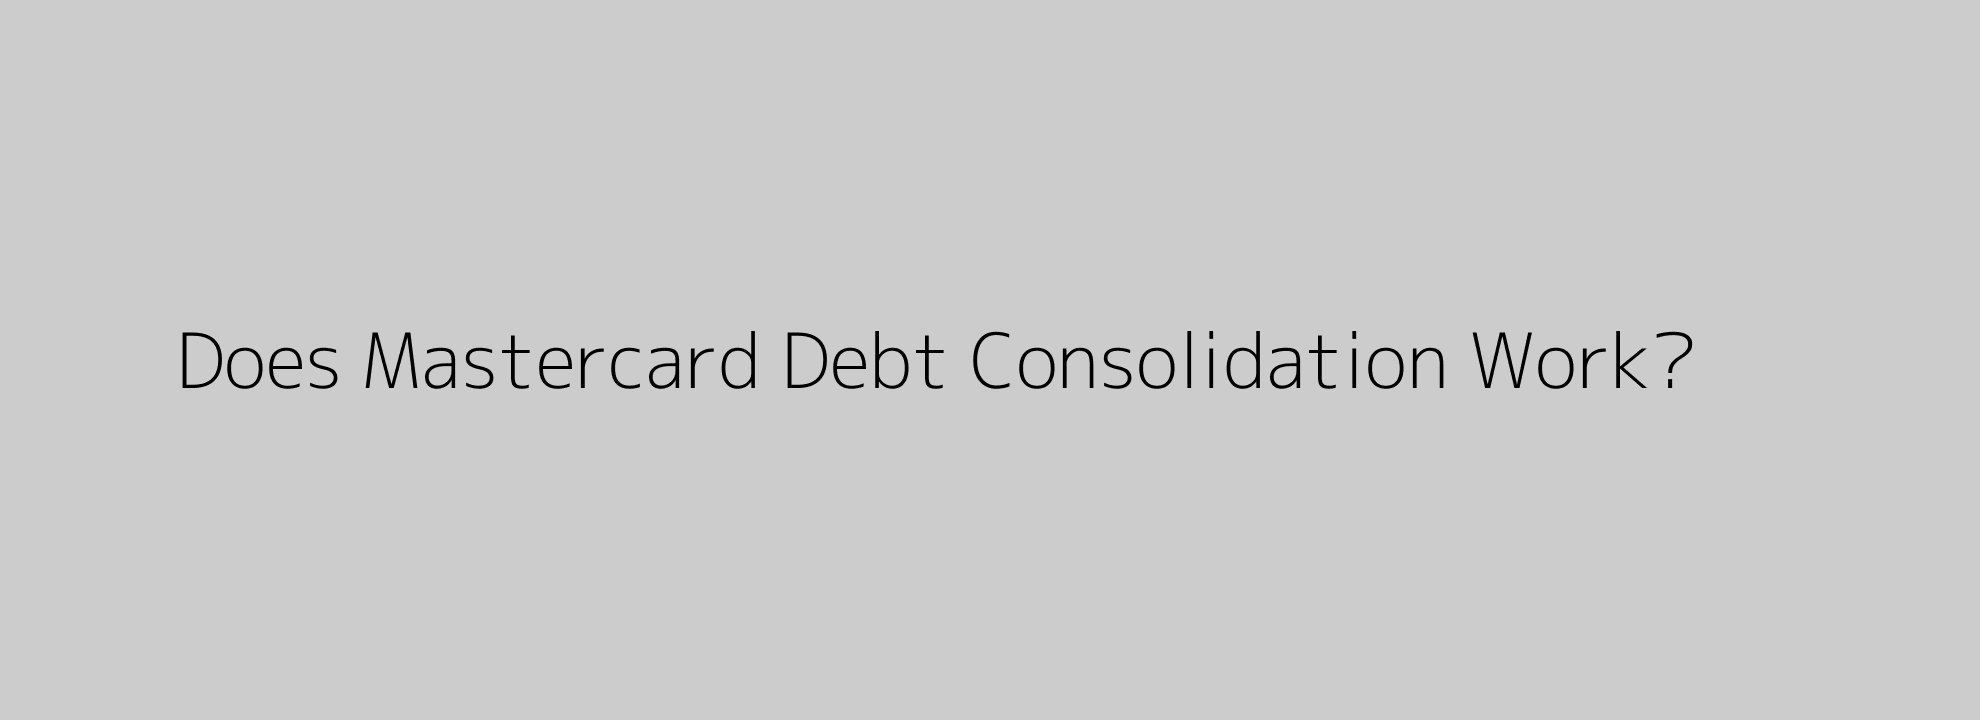 Does Mastercard Debt Consolidation Work?